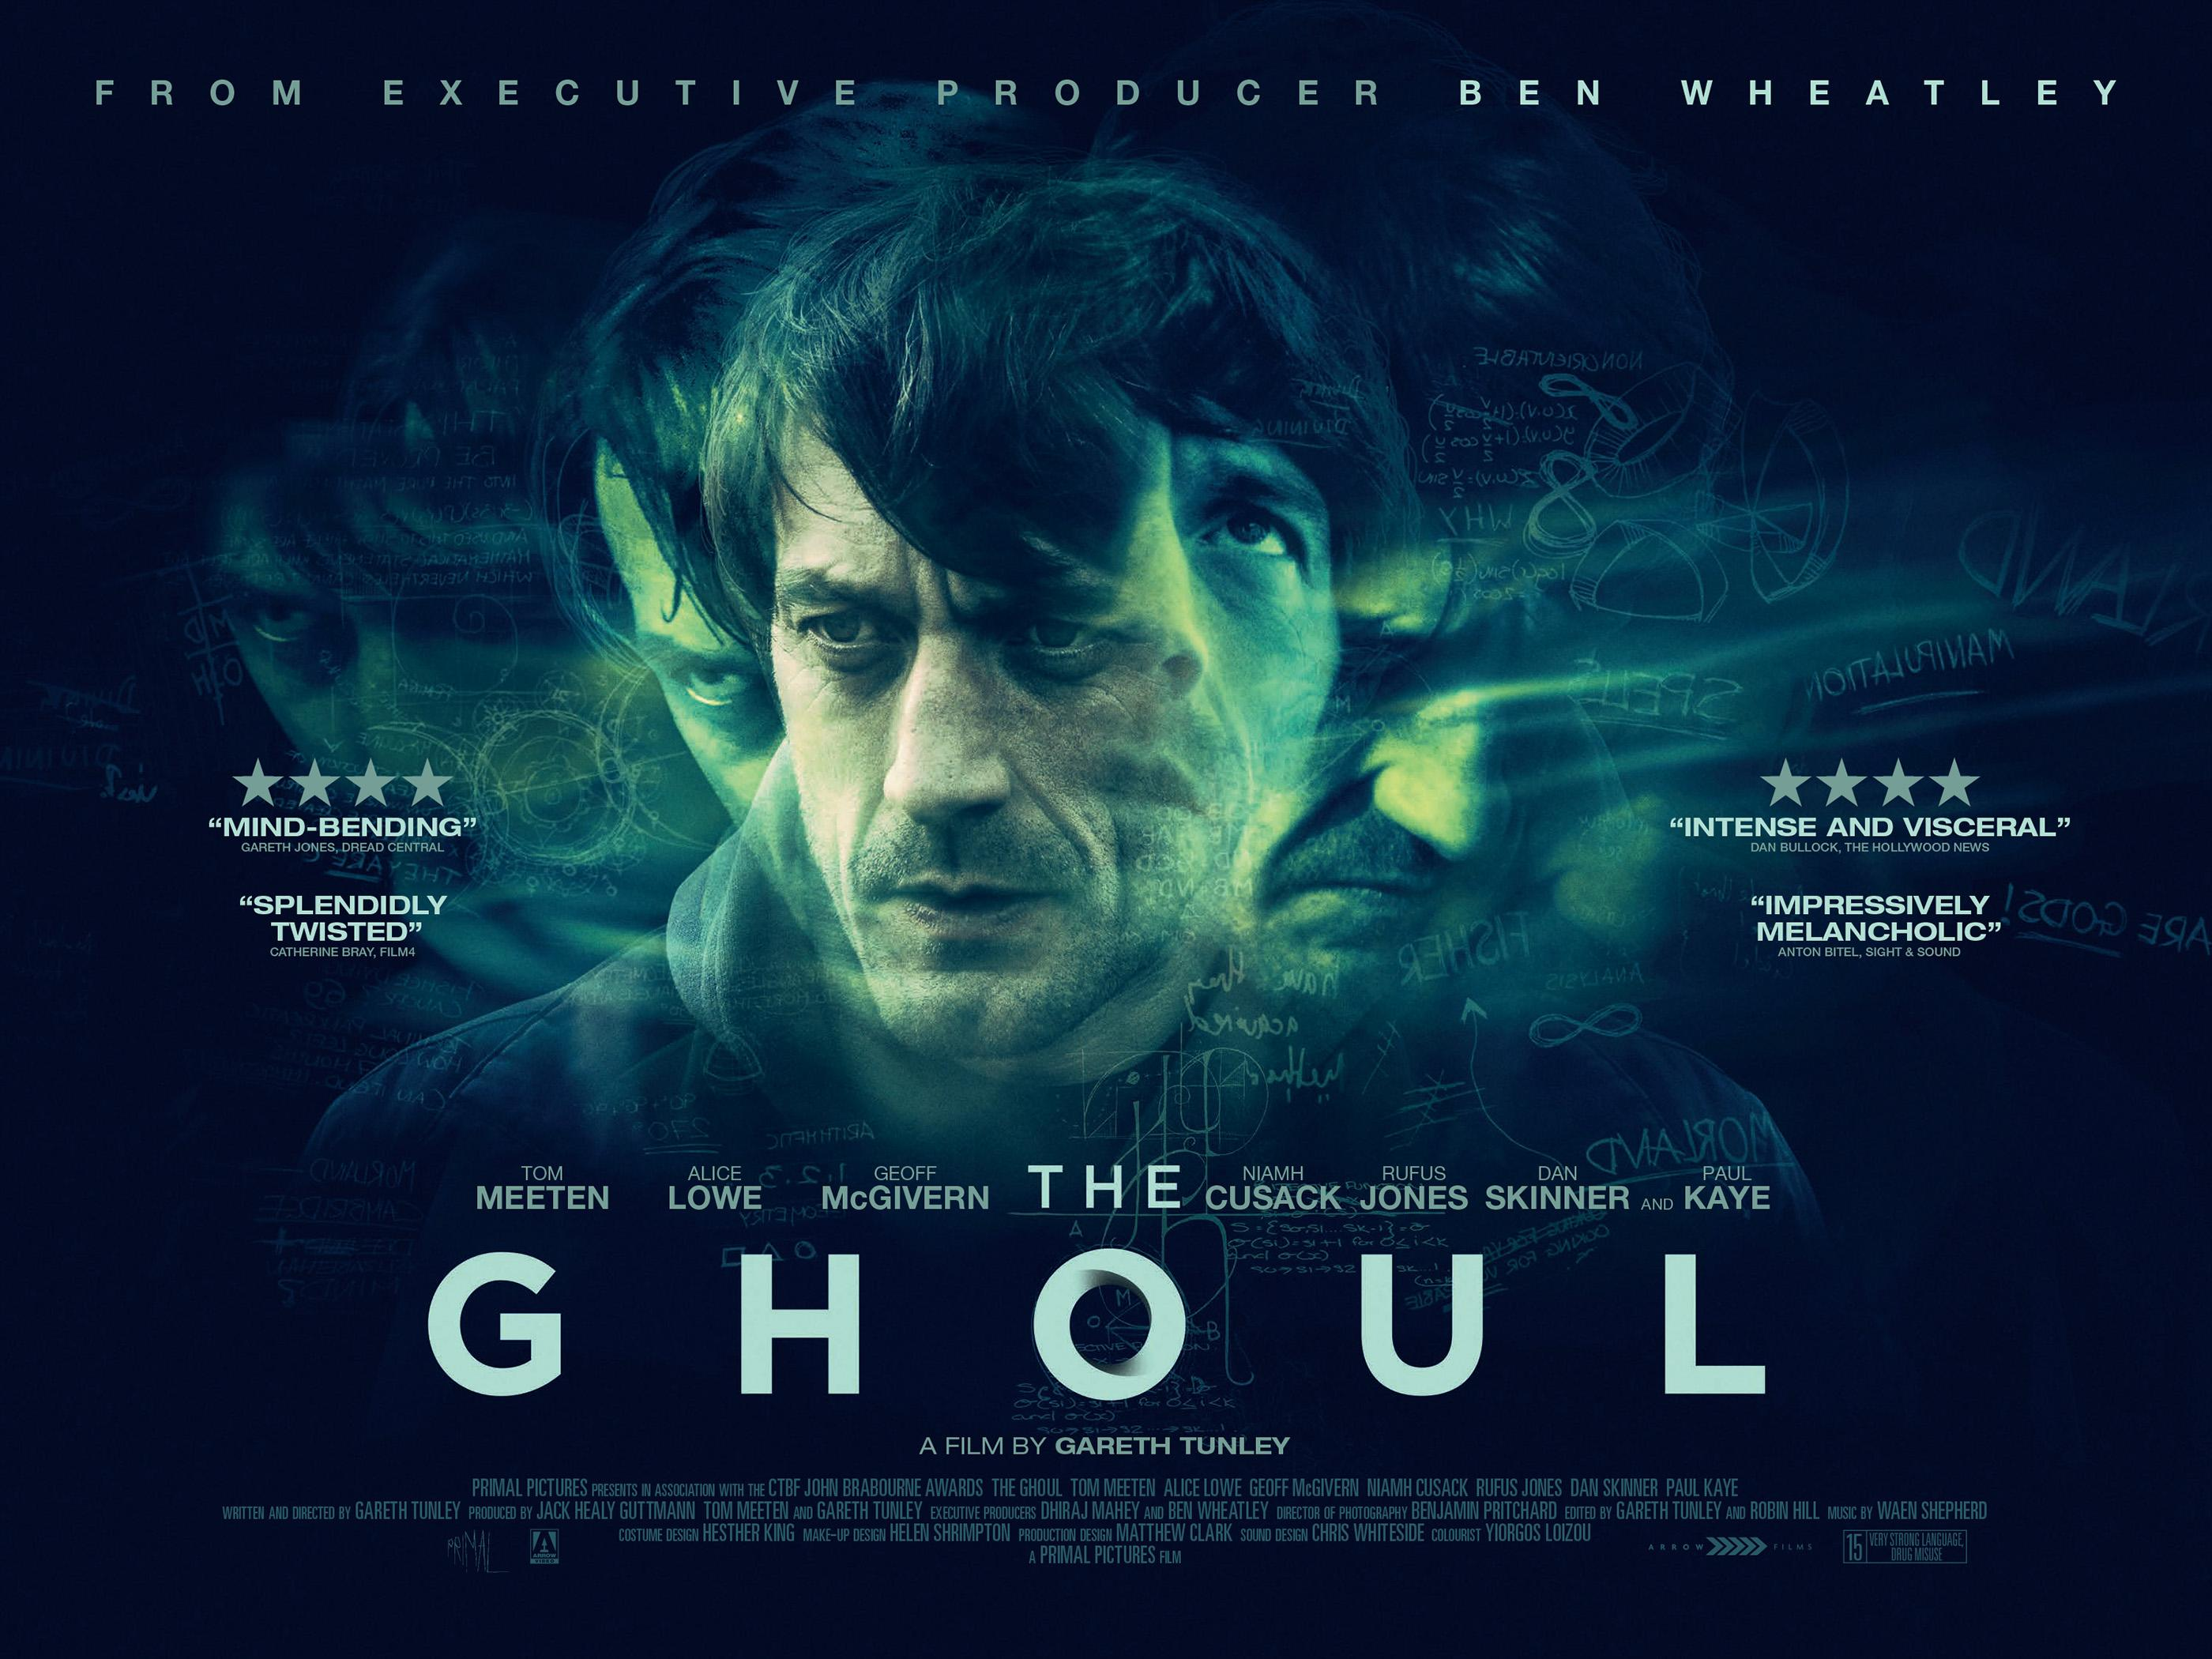 The Ghoul film review: a mind-bending London chiller